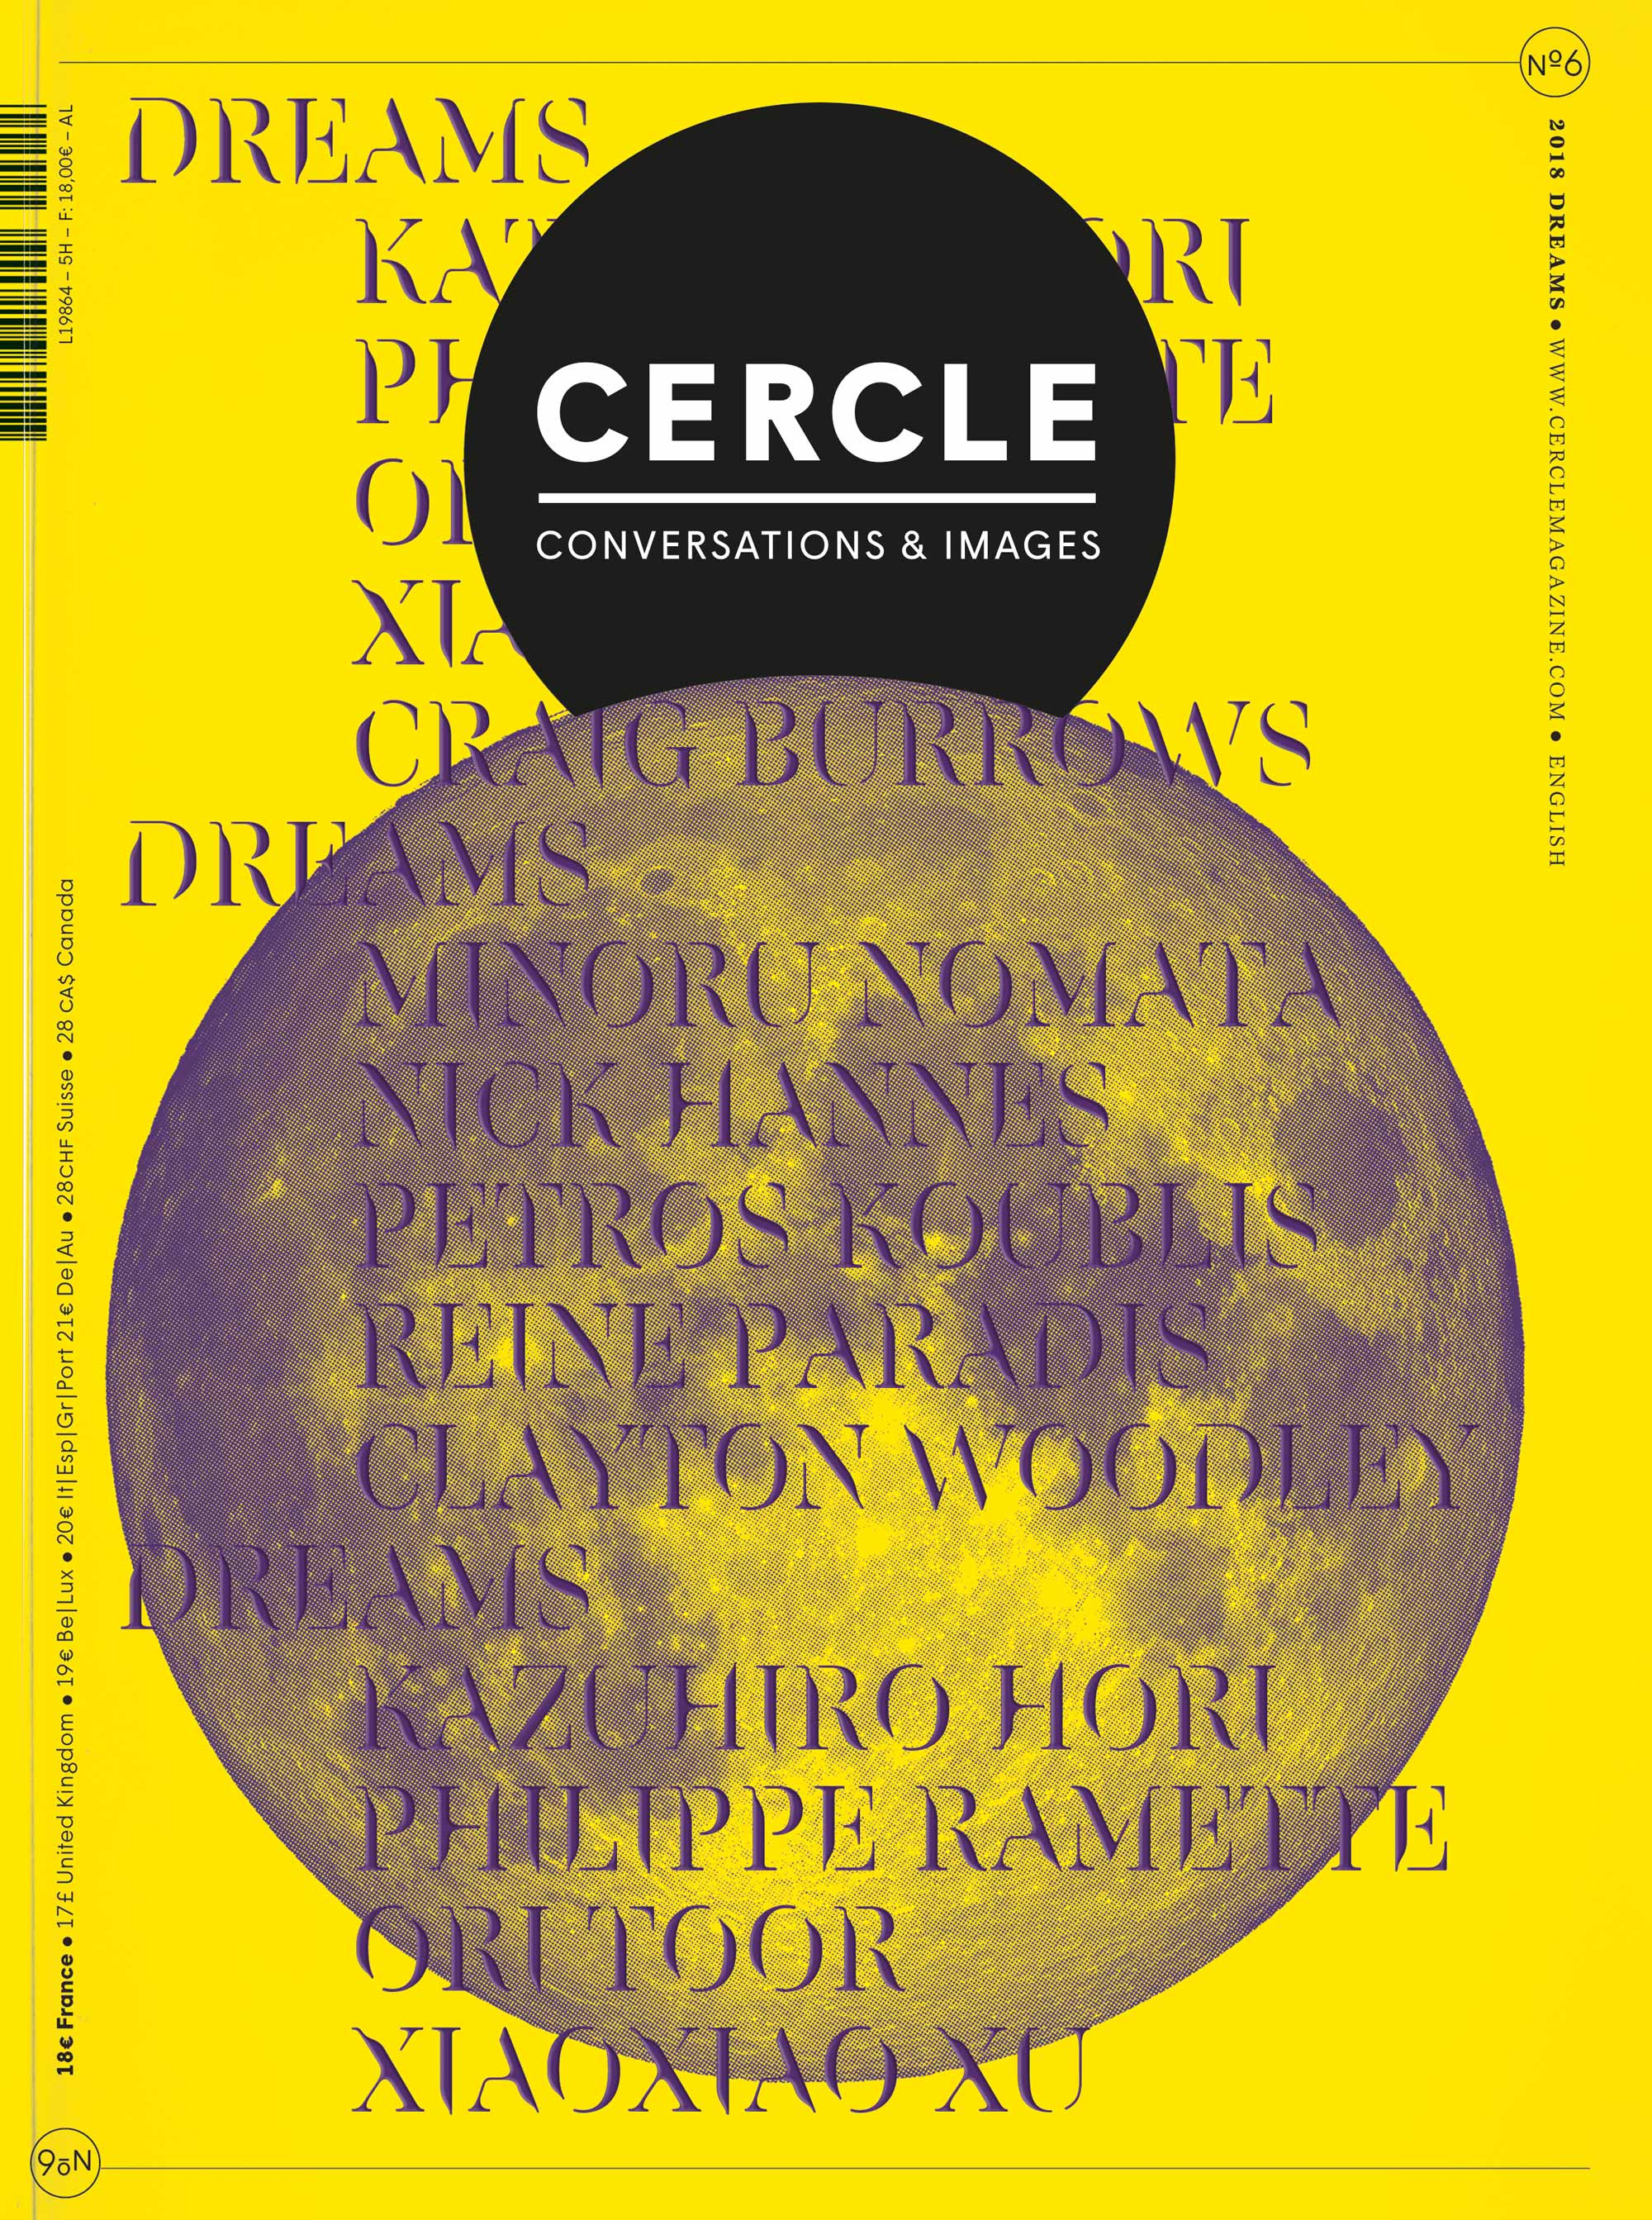 Cercle Magazine #6 – Dreams